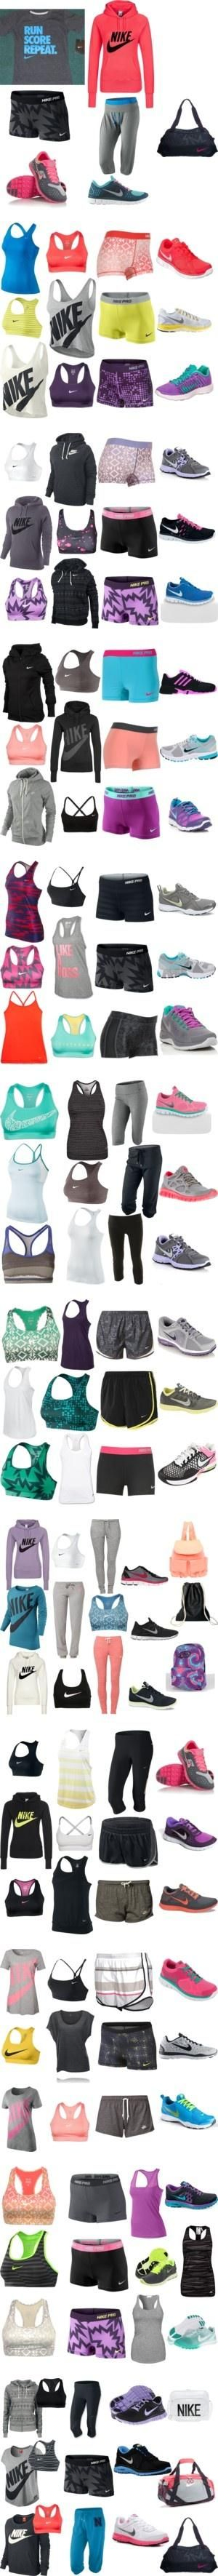 Nike Running Outfits Nike Pro workout clothes for Women | Cute Sport Bras | Running Tights | Workout Shorts | Tank Tops @ http://www.FitnessGirlApparel.com